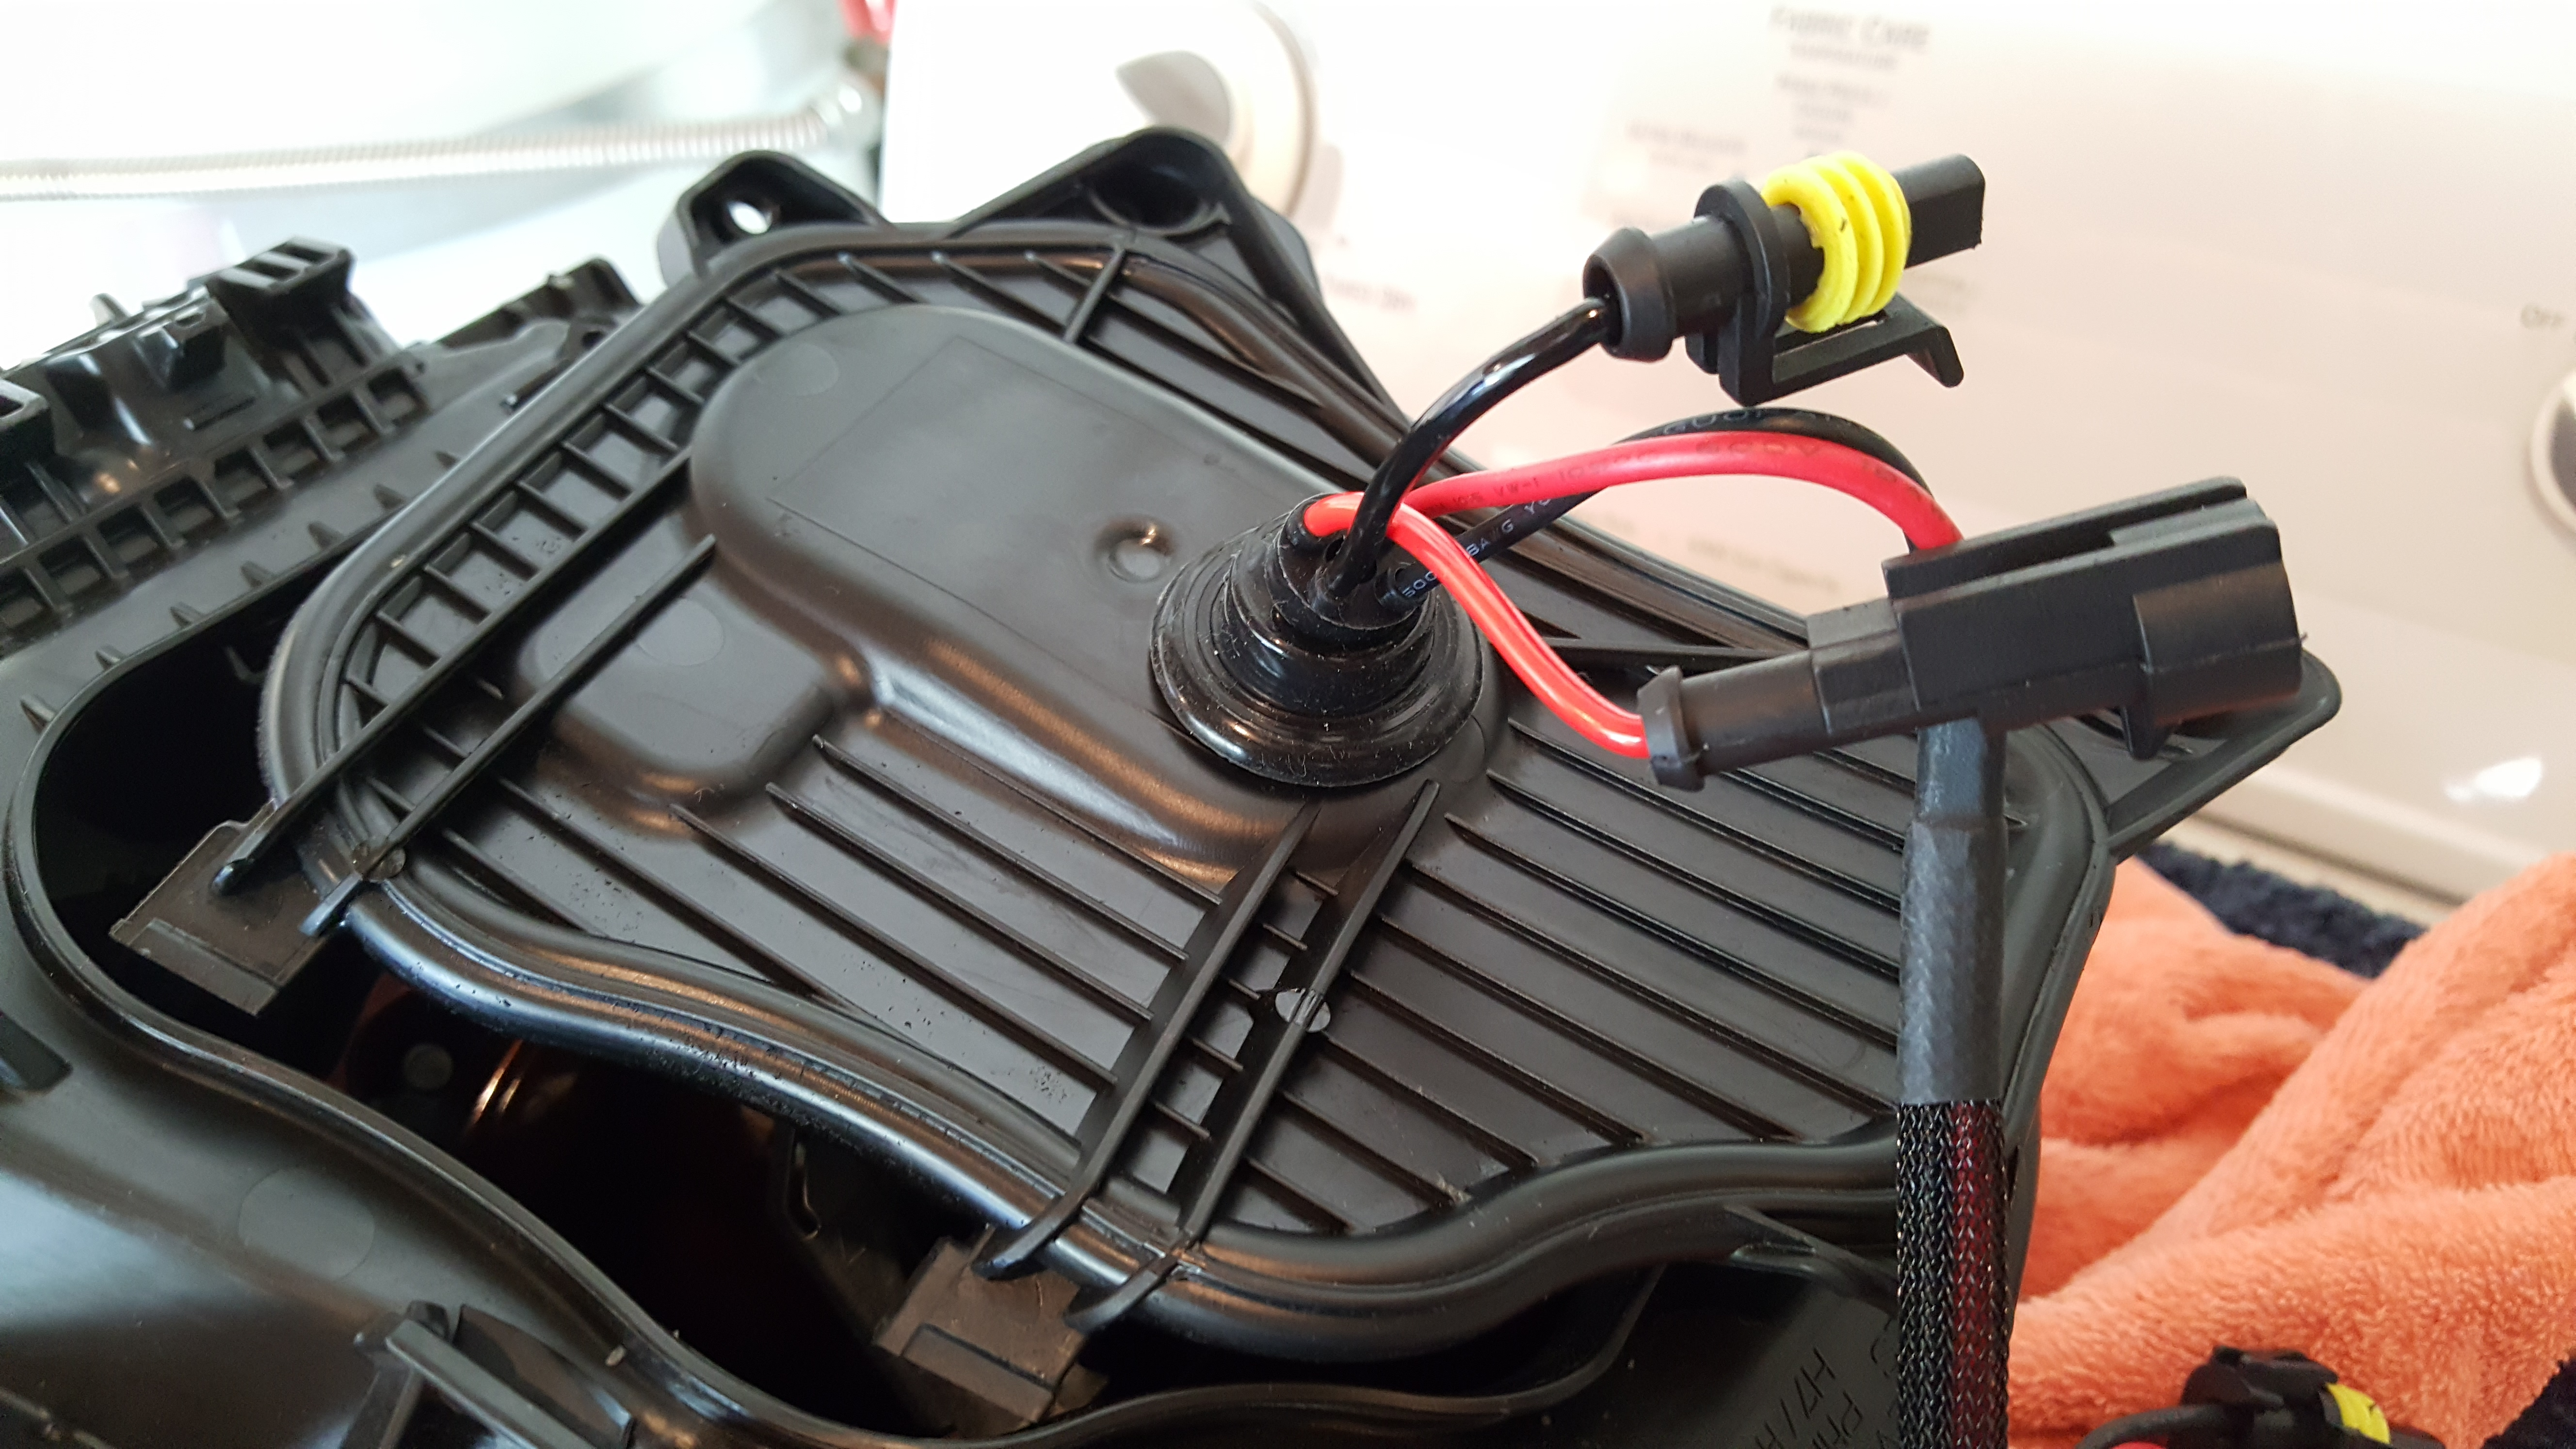 ... Installed HID Kit Today on Base  Boxster-20160807_102709_1470595276752-jpg ...